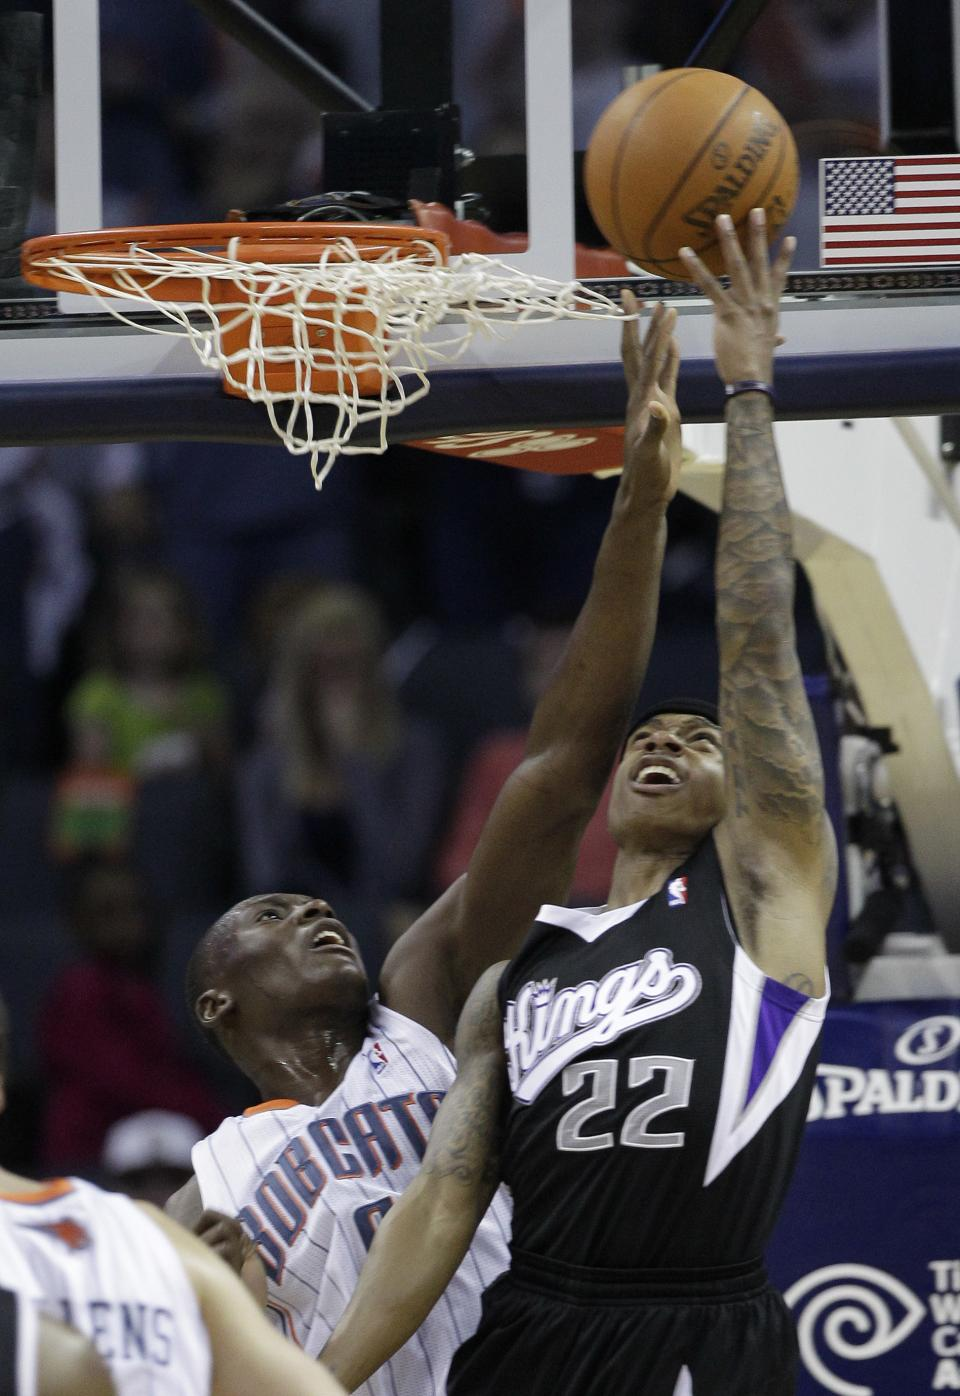 Sacramento Kings' Isaiah Thomas (22) shoots over Charlotte Bobcats' Bismack Biyombo (0) during the first half of an NBA basketball game in Charlotte, N.C., Sunday, April 22, 2012. (AP Photo/Chuck Burton)